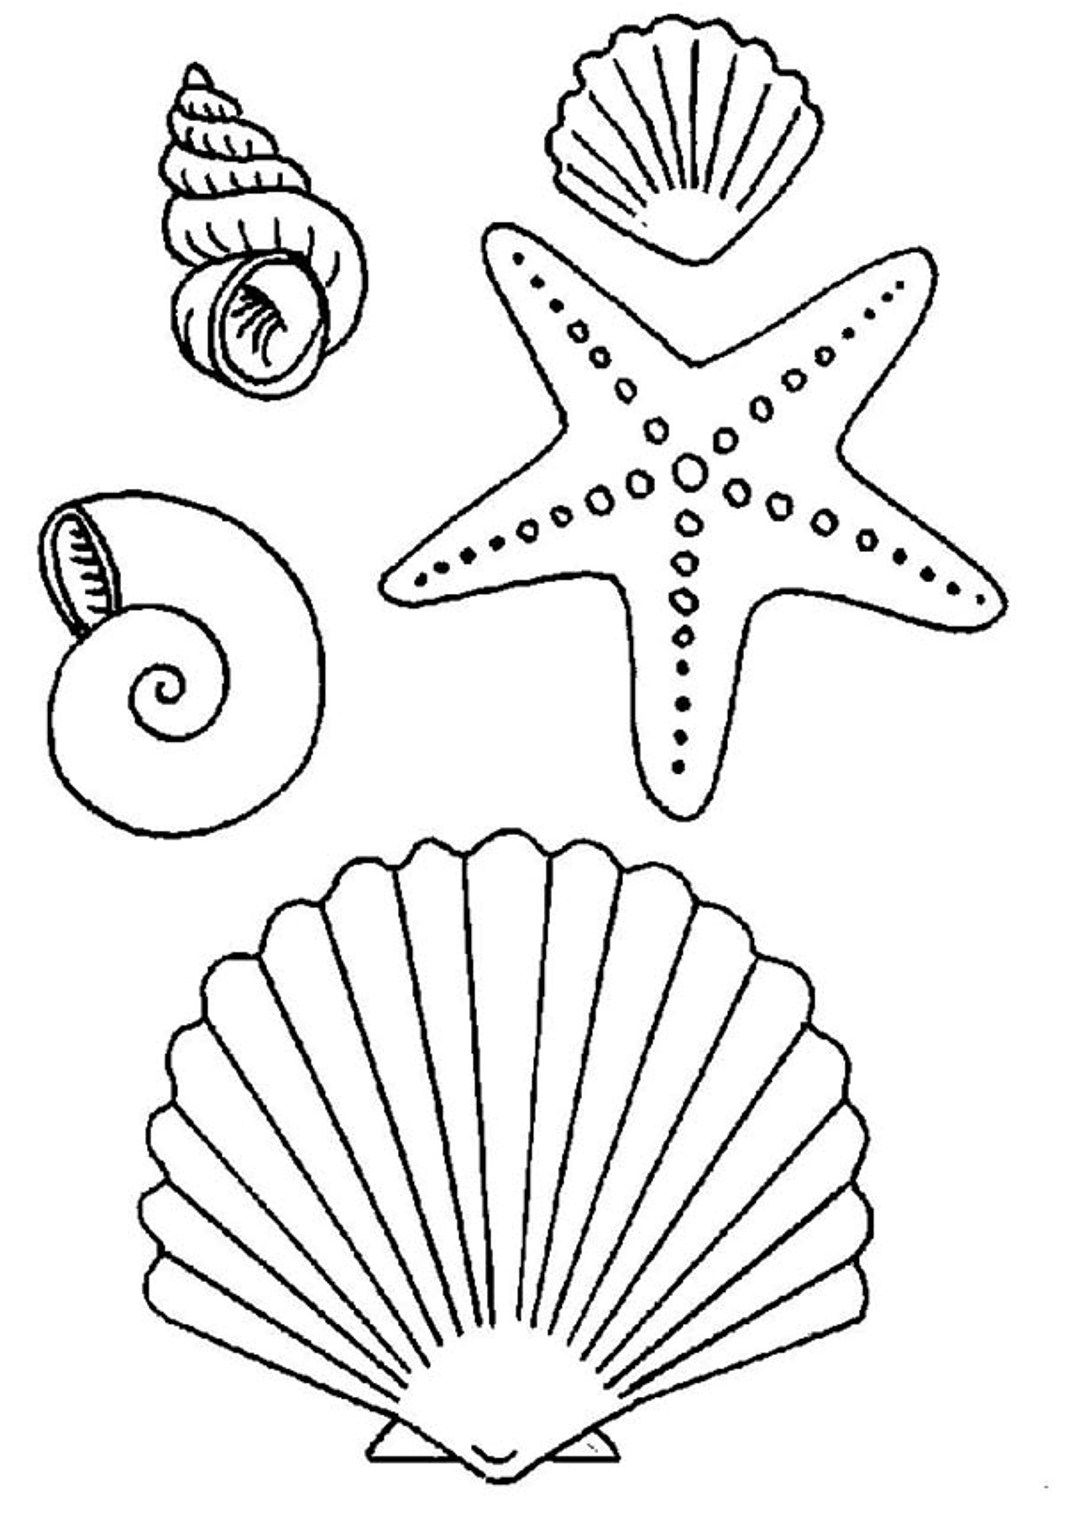 1068x1533 Helpful Sea Star Coloring Page Fish Free Printable Pages